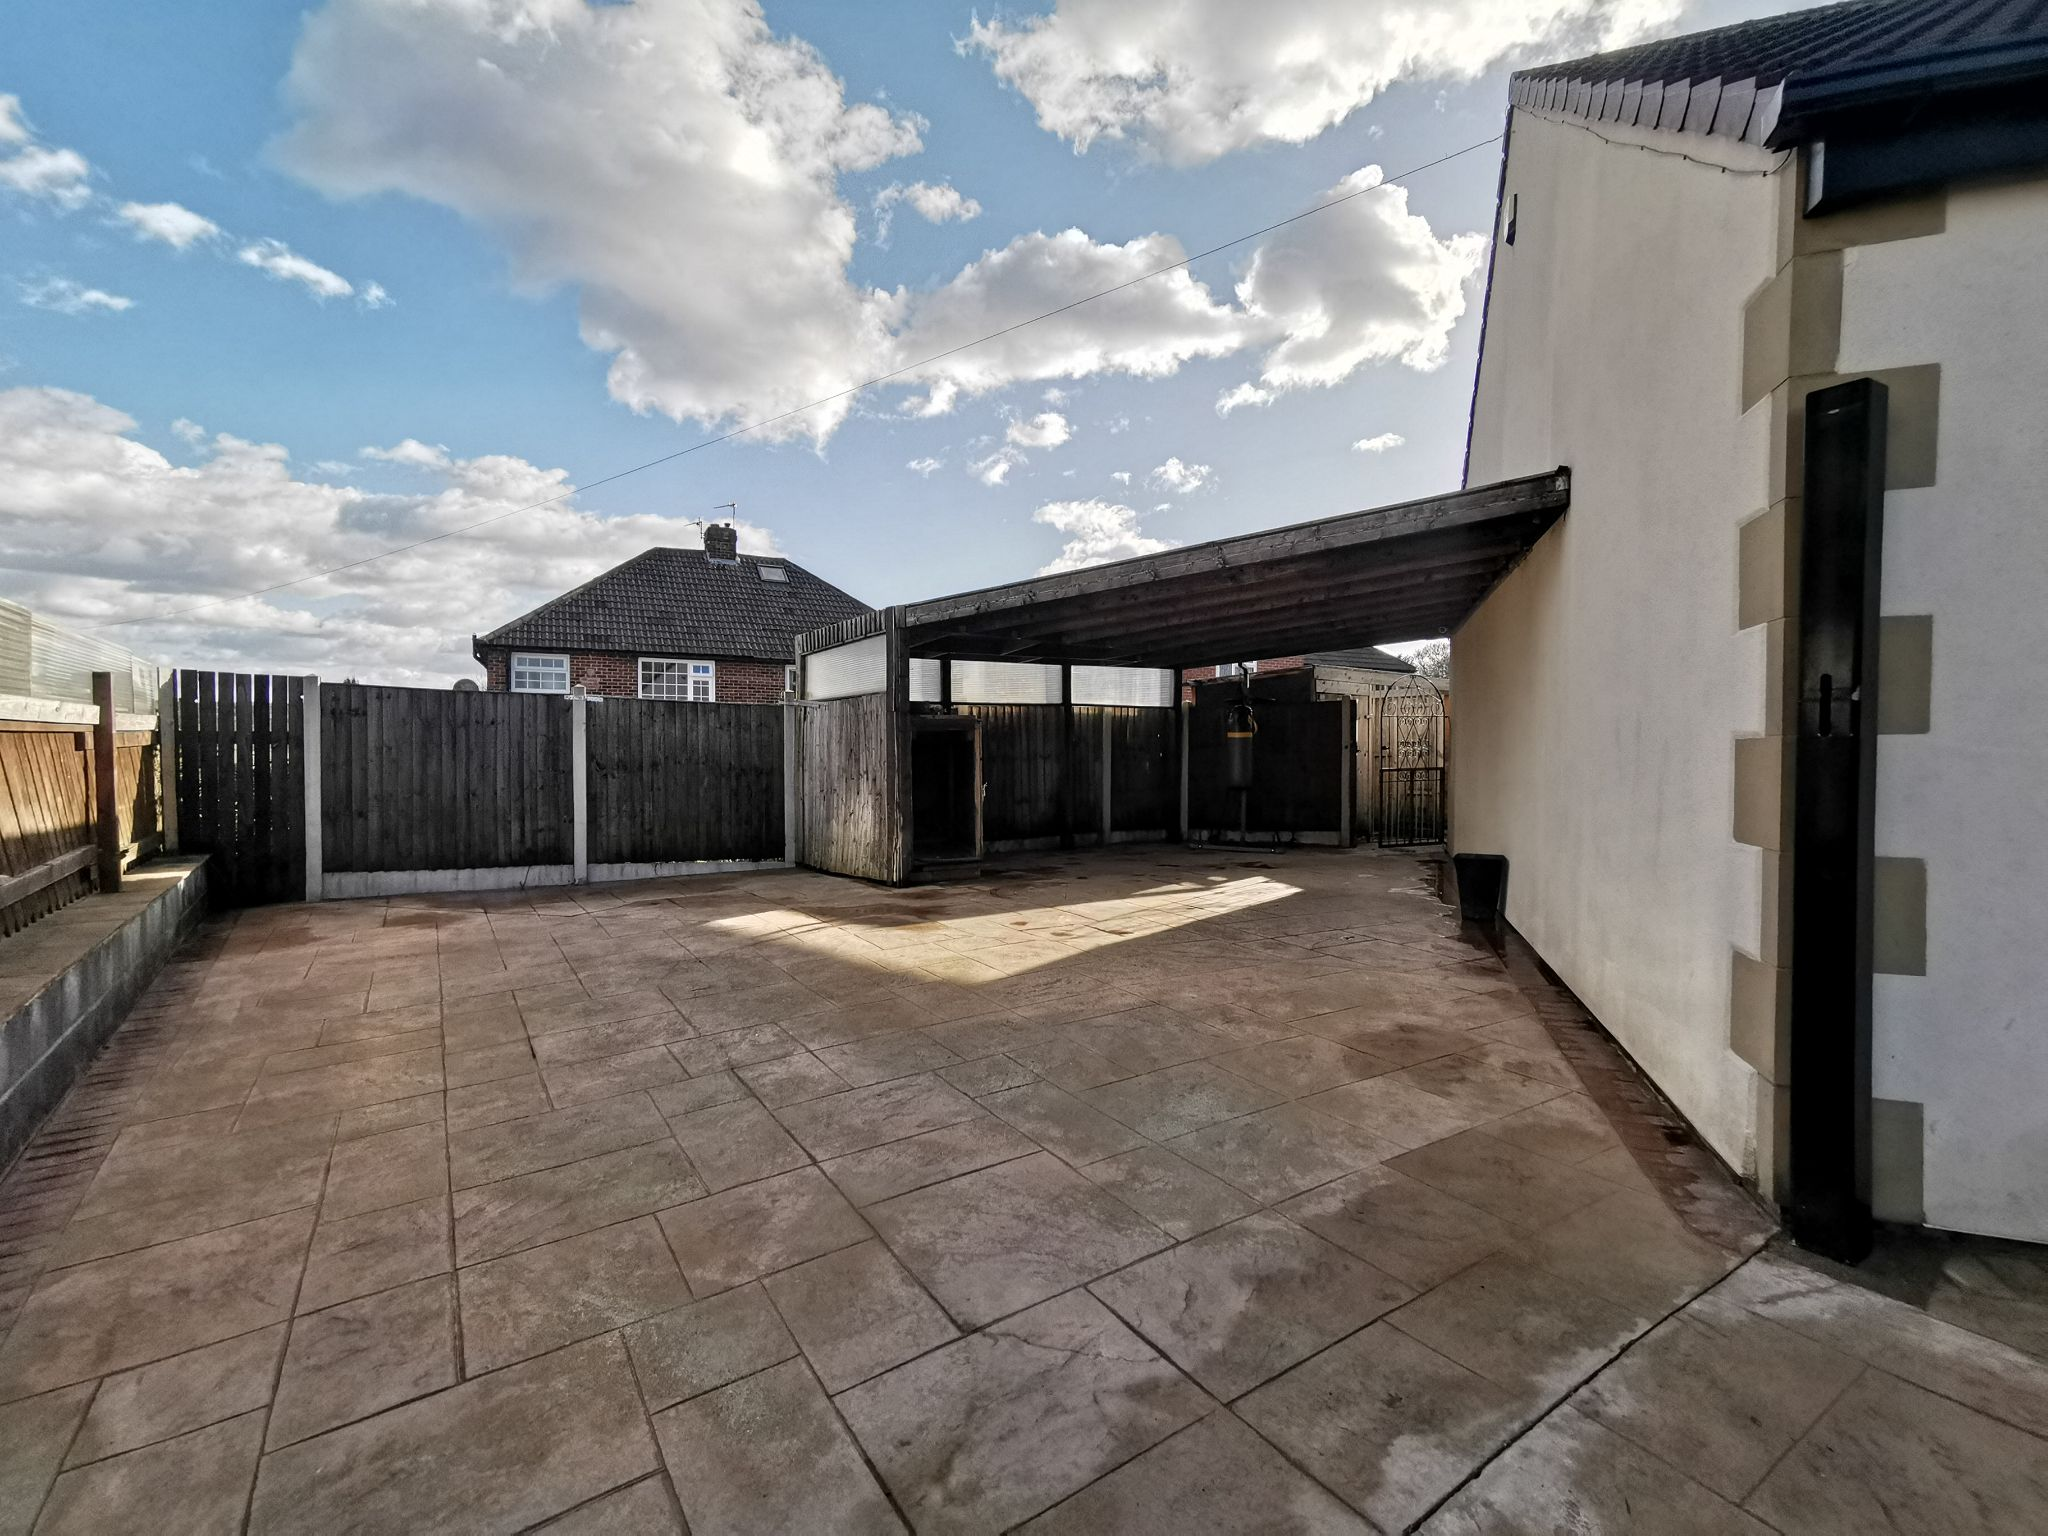 6 bedroom detached bungalow For Sale in Bradford - Photograph 31.